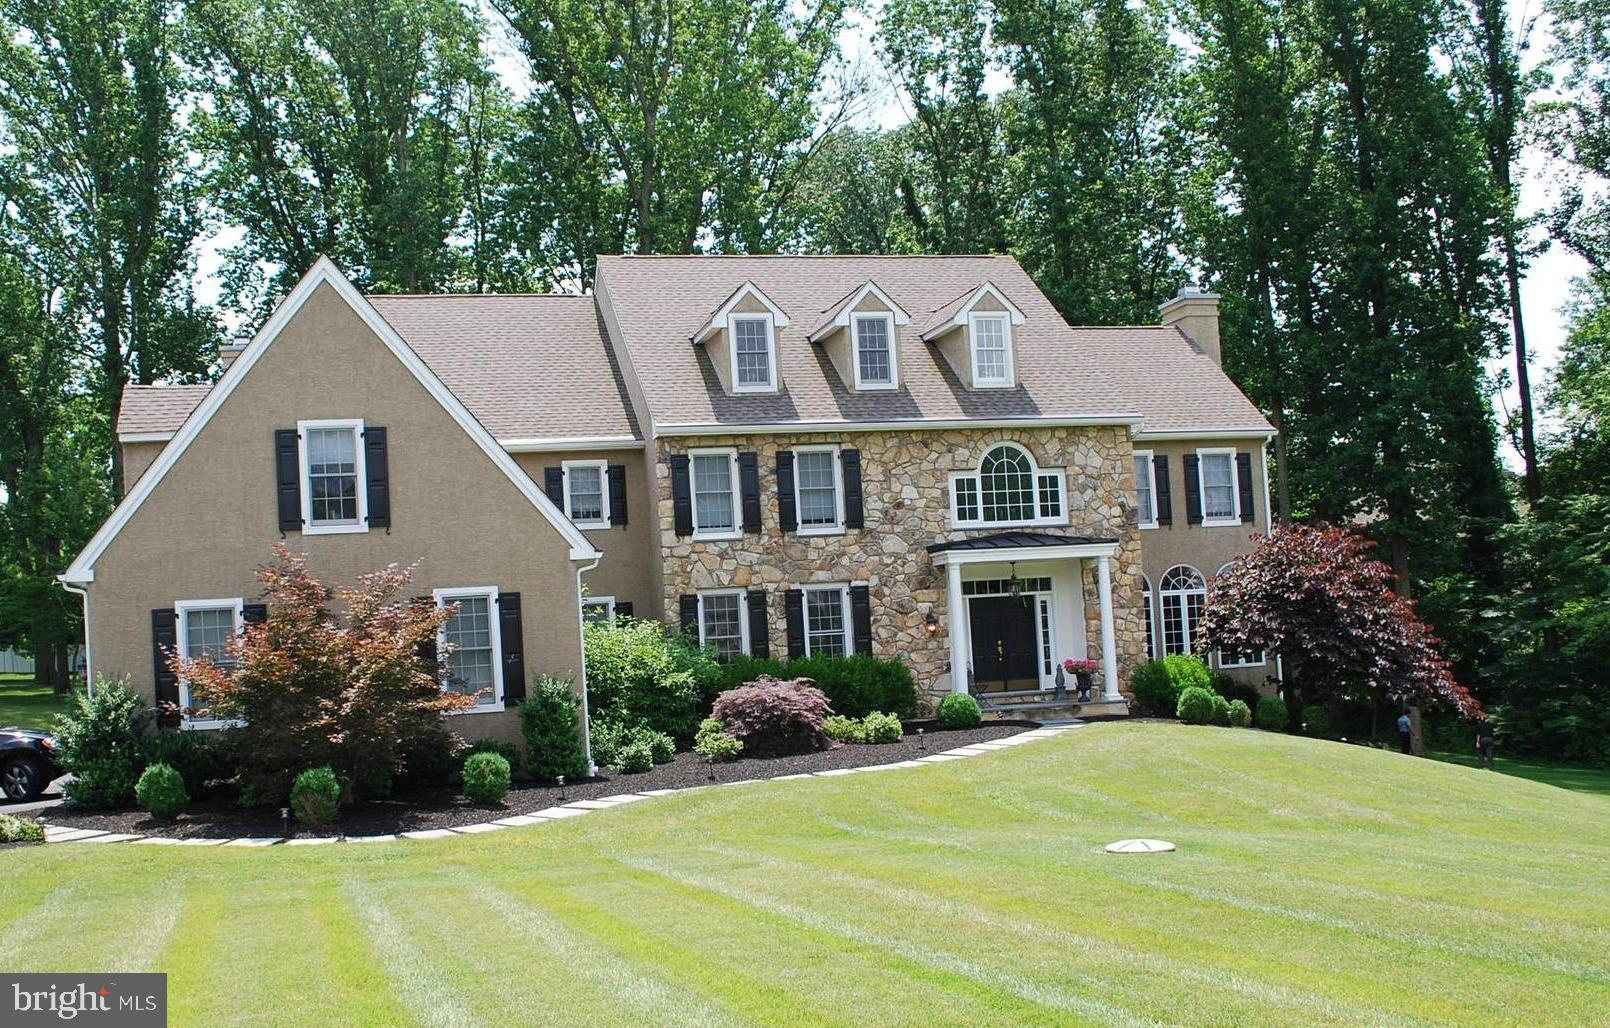 122 SPRING TREE DRIVE, NEWTOWN SQUARE, PA 19073